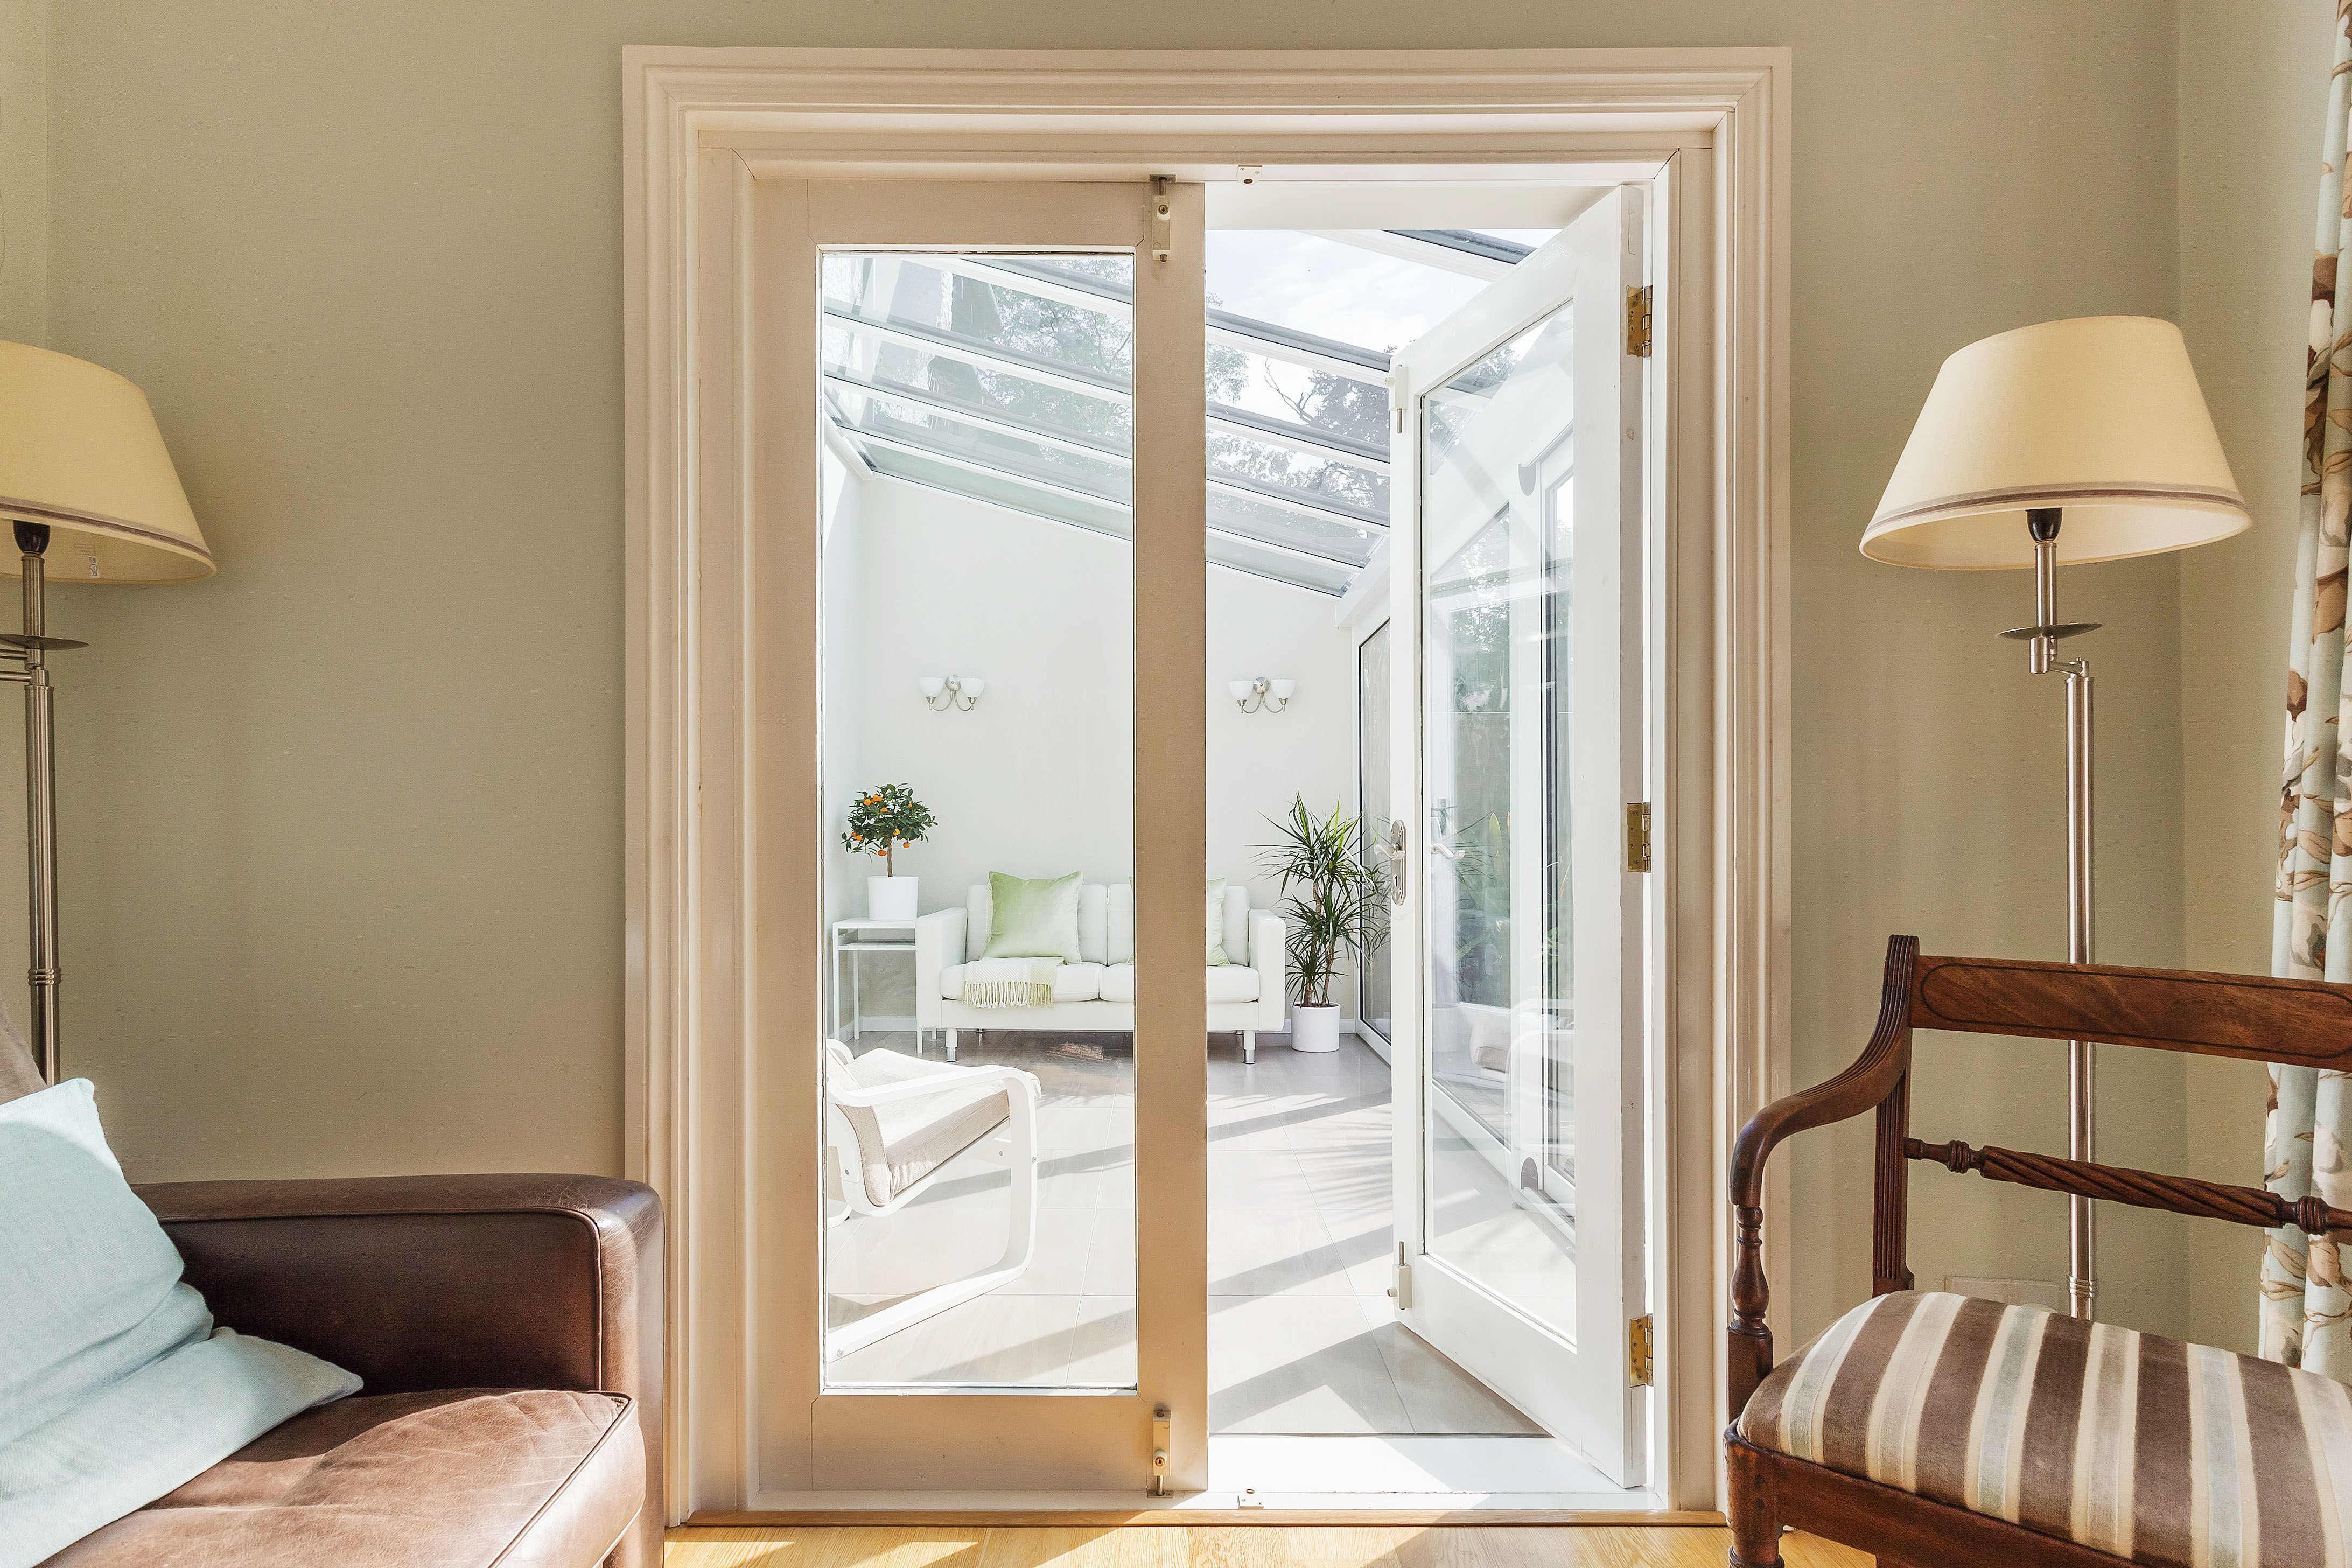 lean-to conservatory with French Doors purley